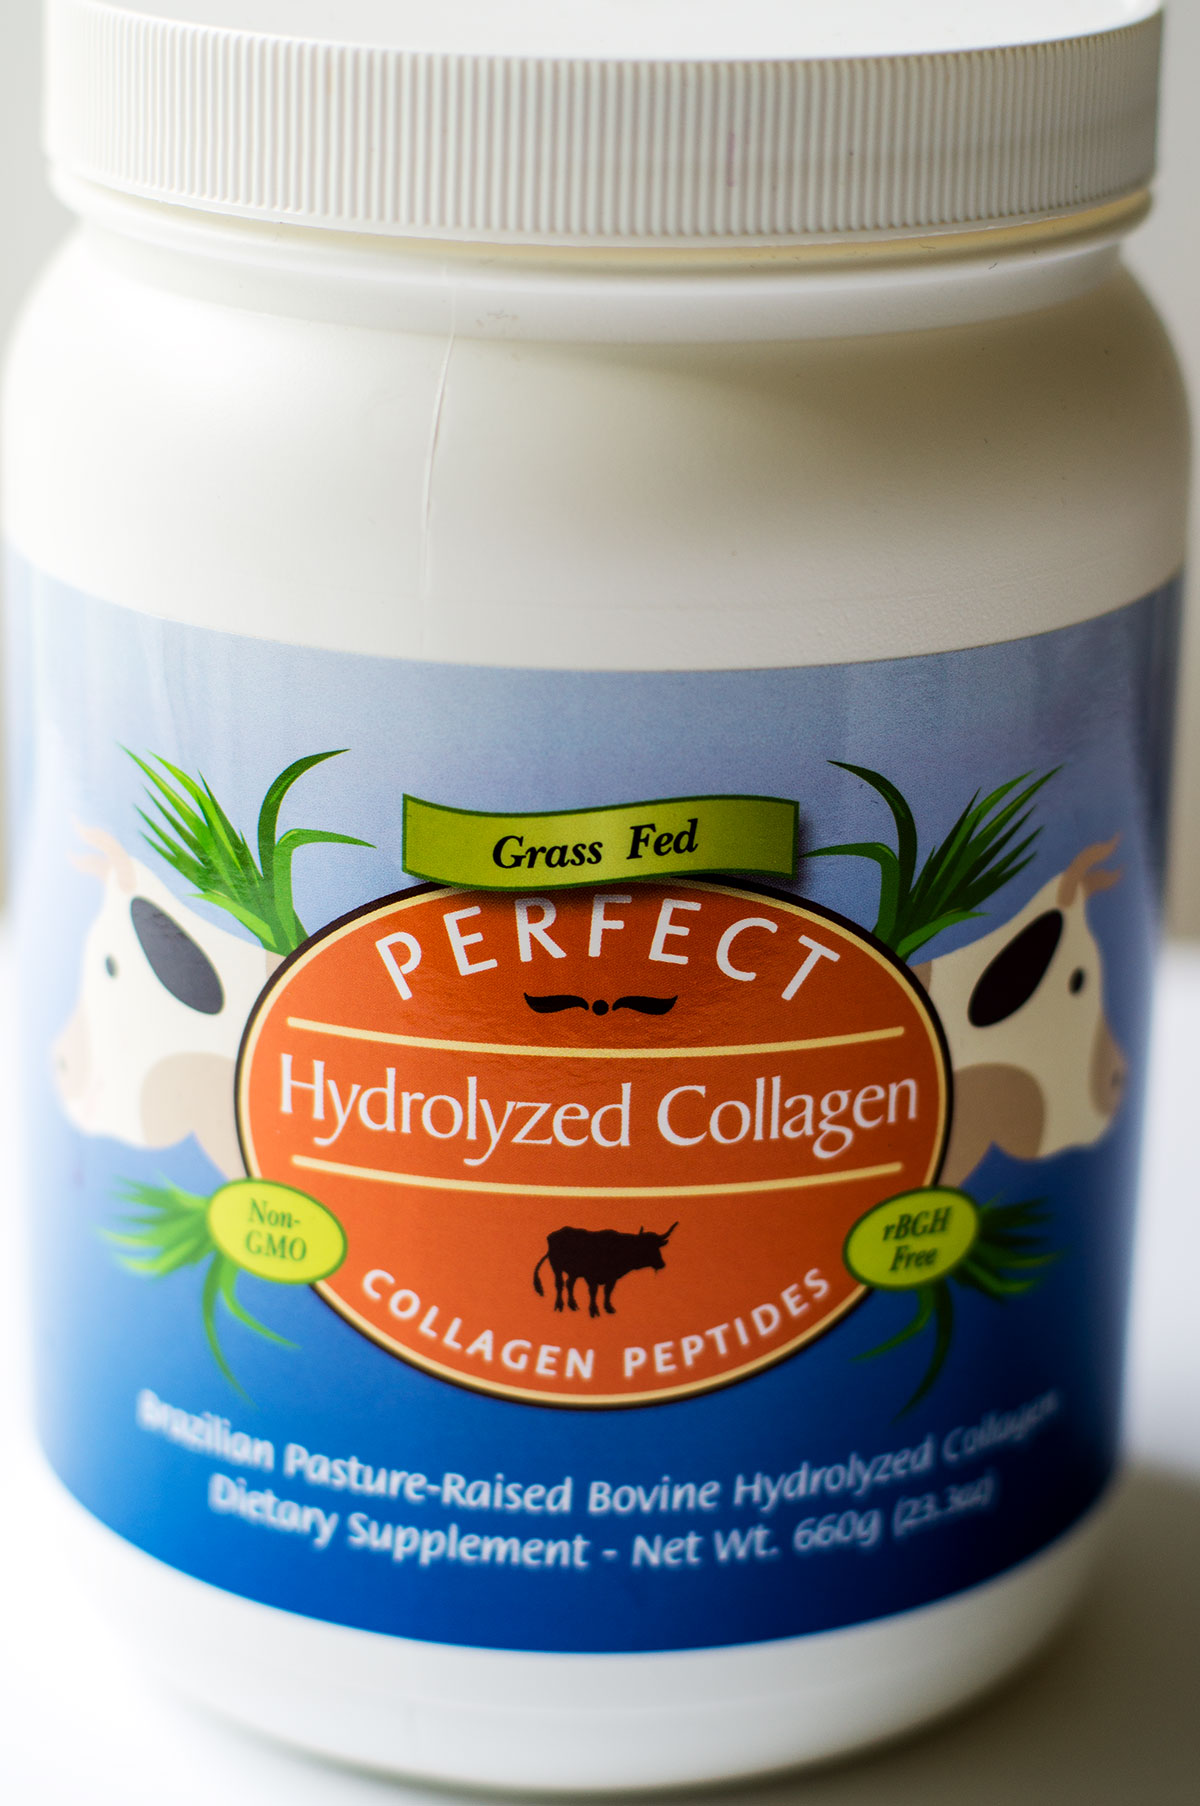 Grass-Fed Hydrolyzed Collagen Peptides by Perfect Supplements - most cost effective per gram!